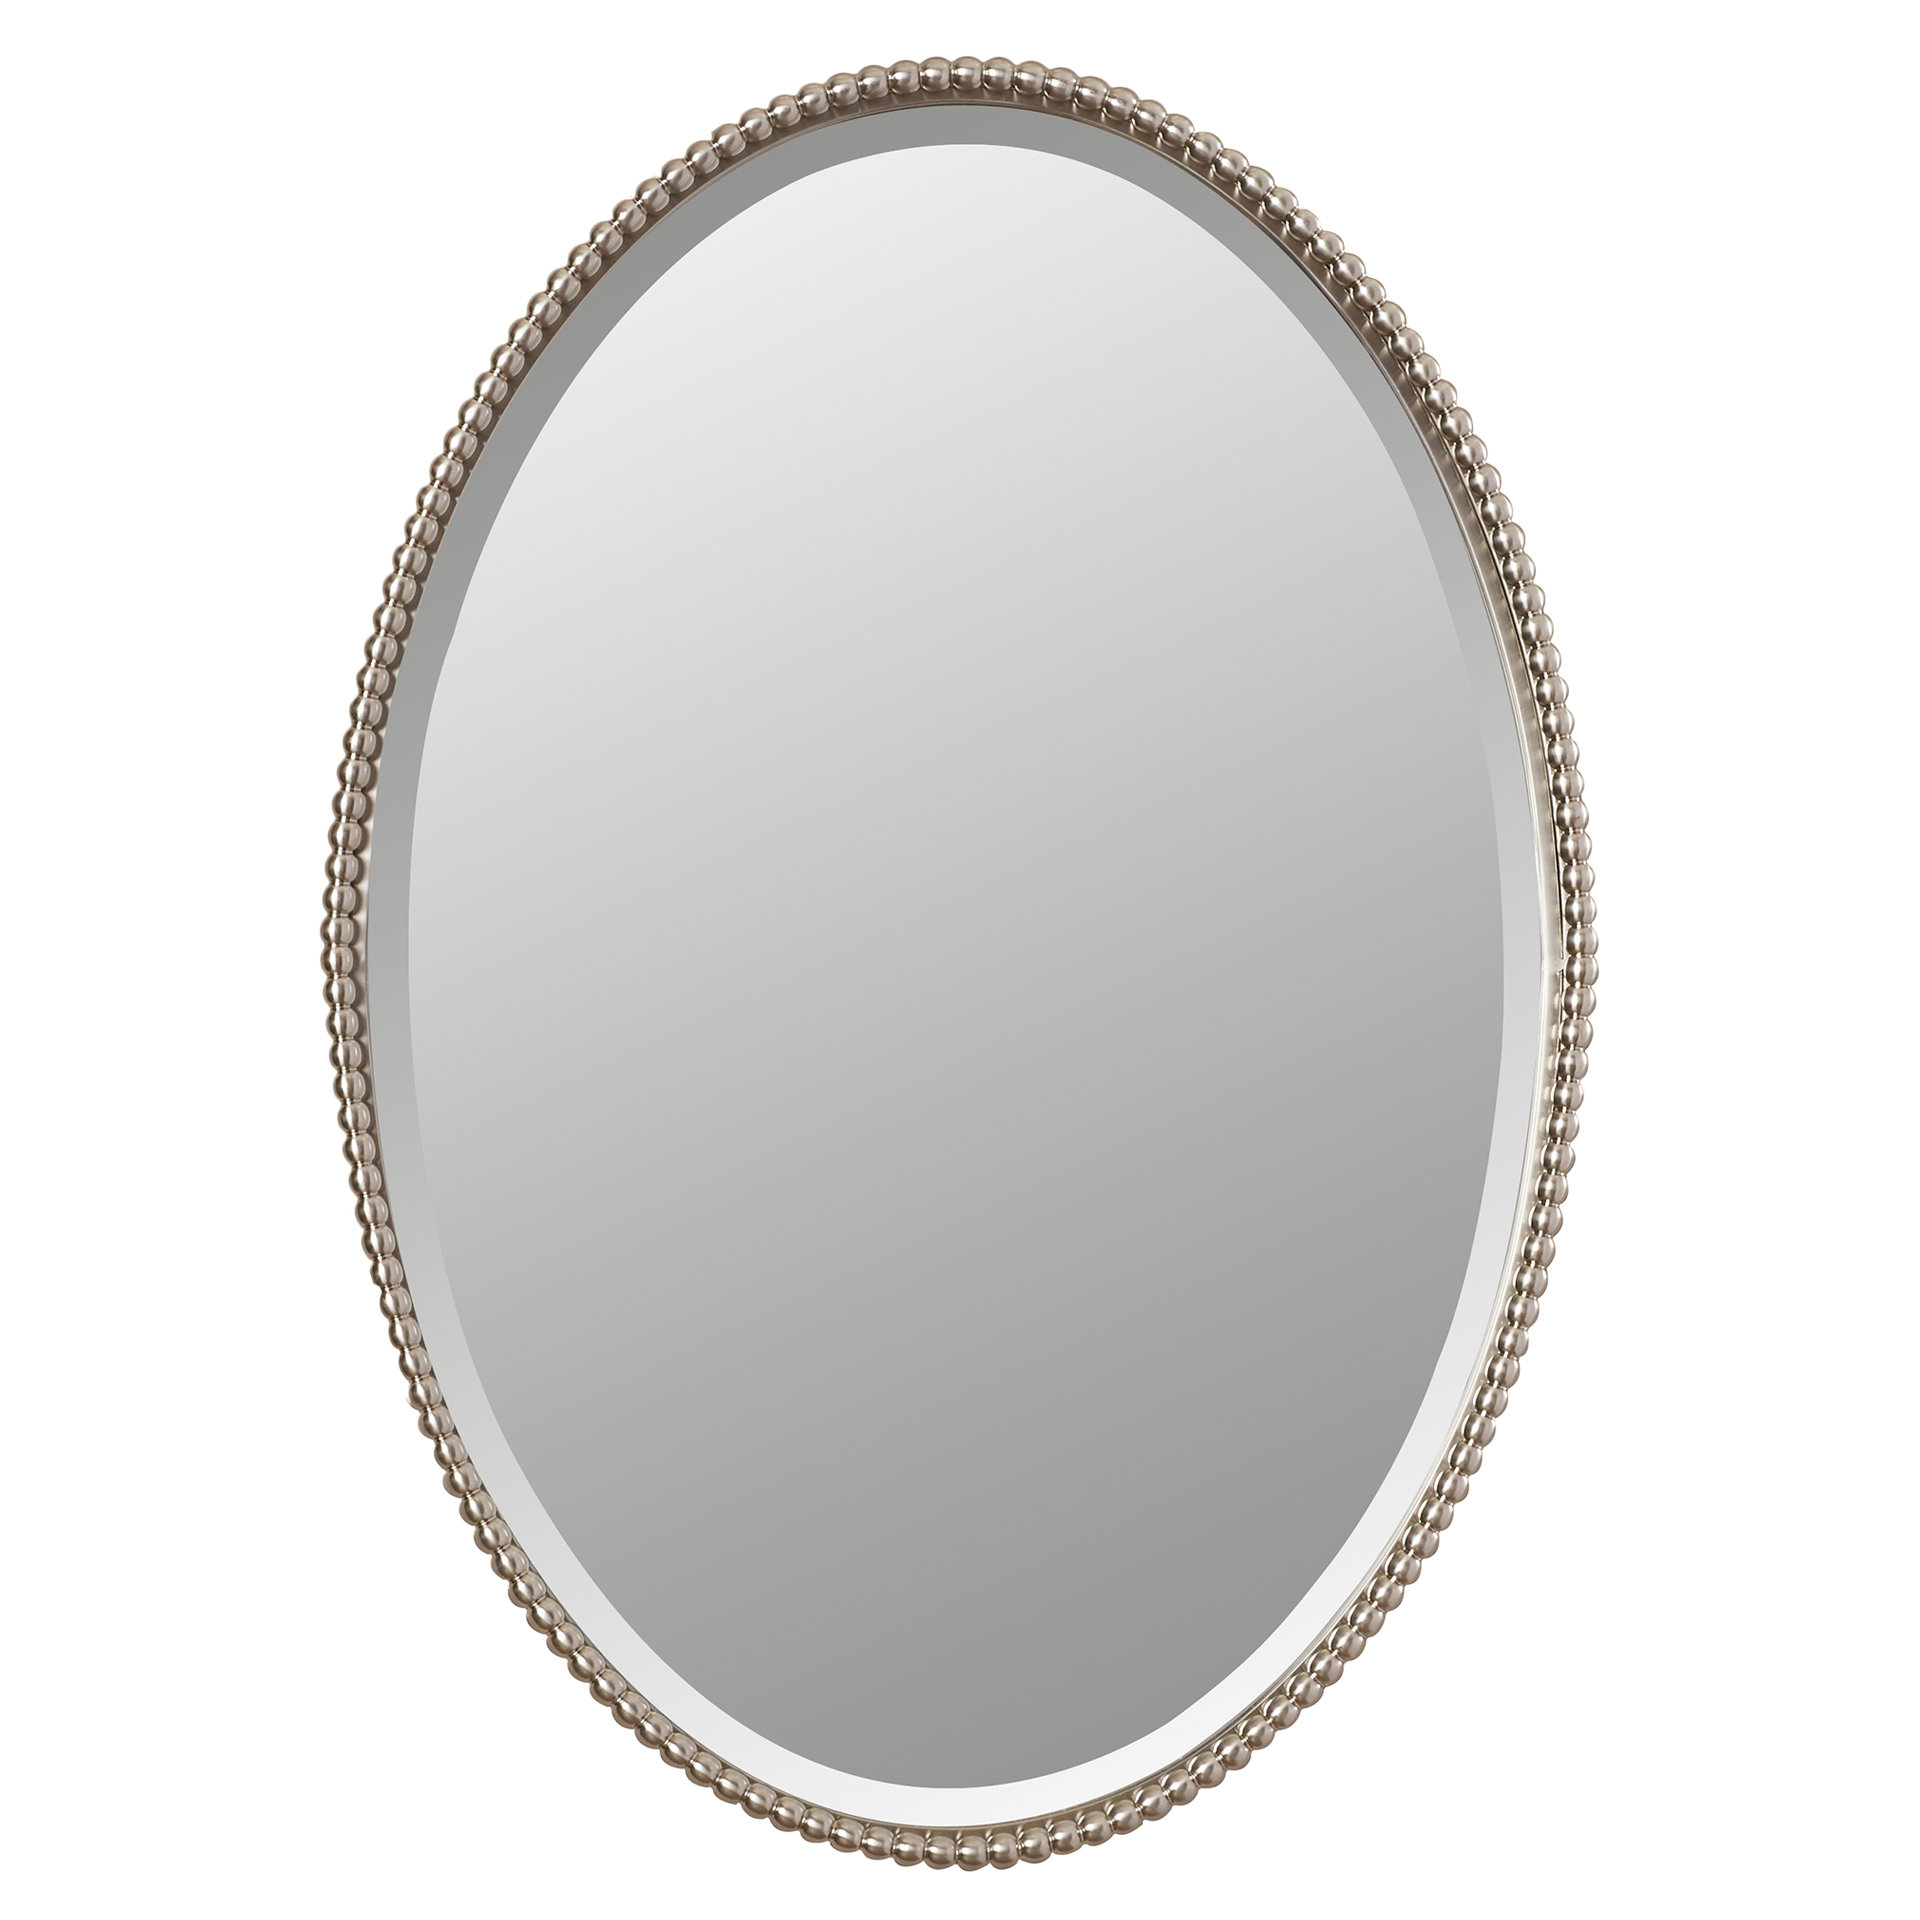 Glen View Beaded Oval Traditional Accent Mirror Within Beaded Accent Wall Mirrors (View 22 of 30)